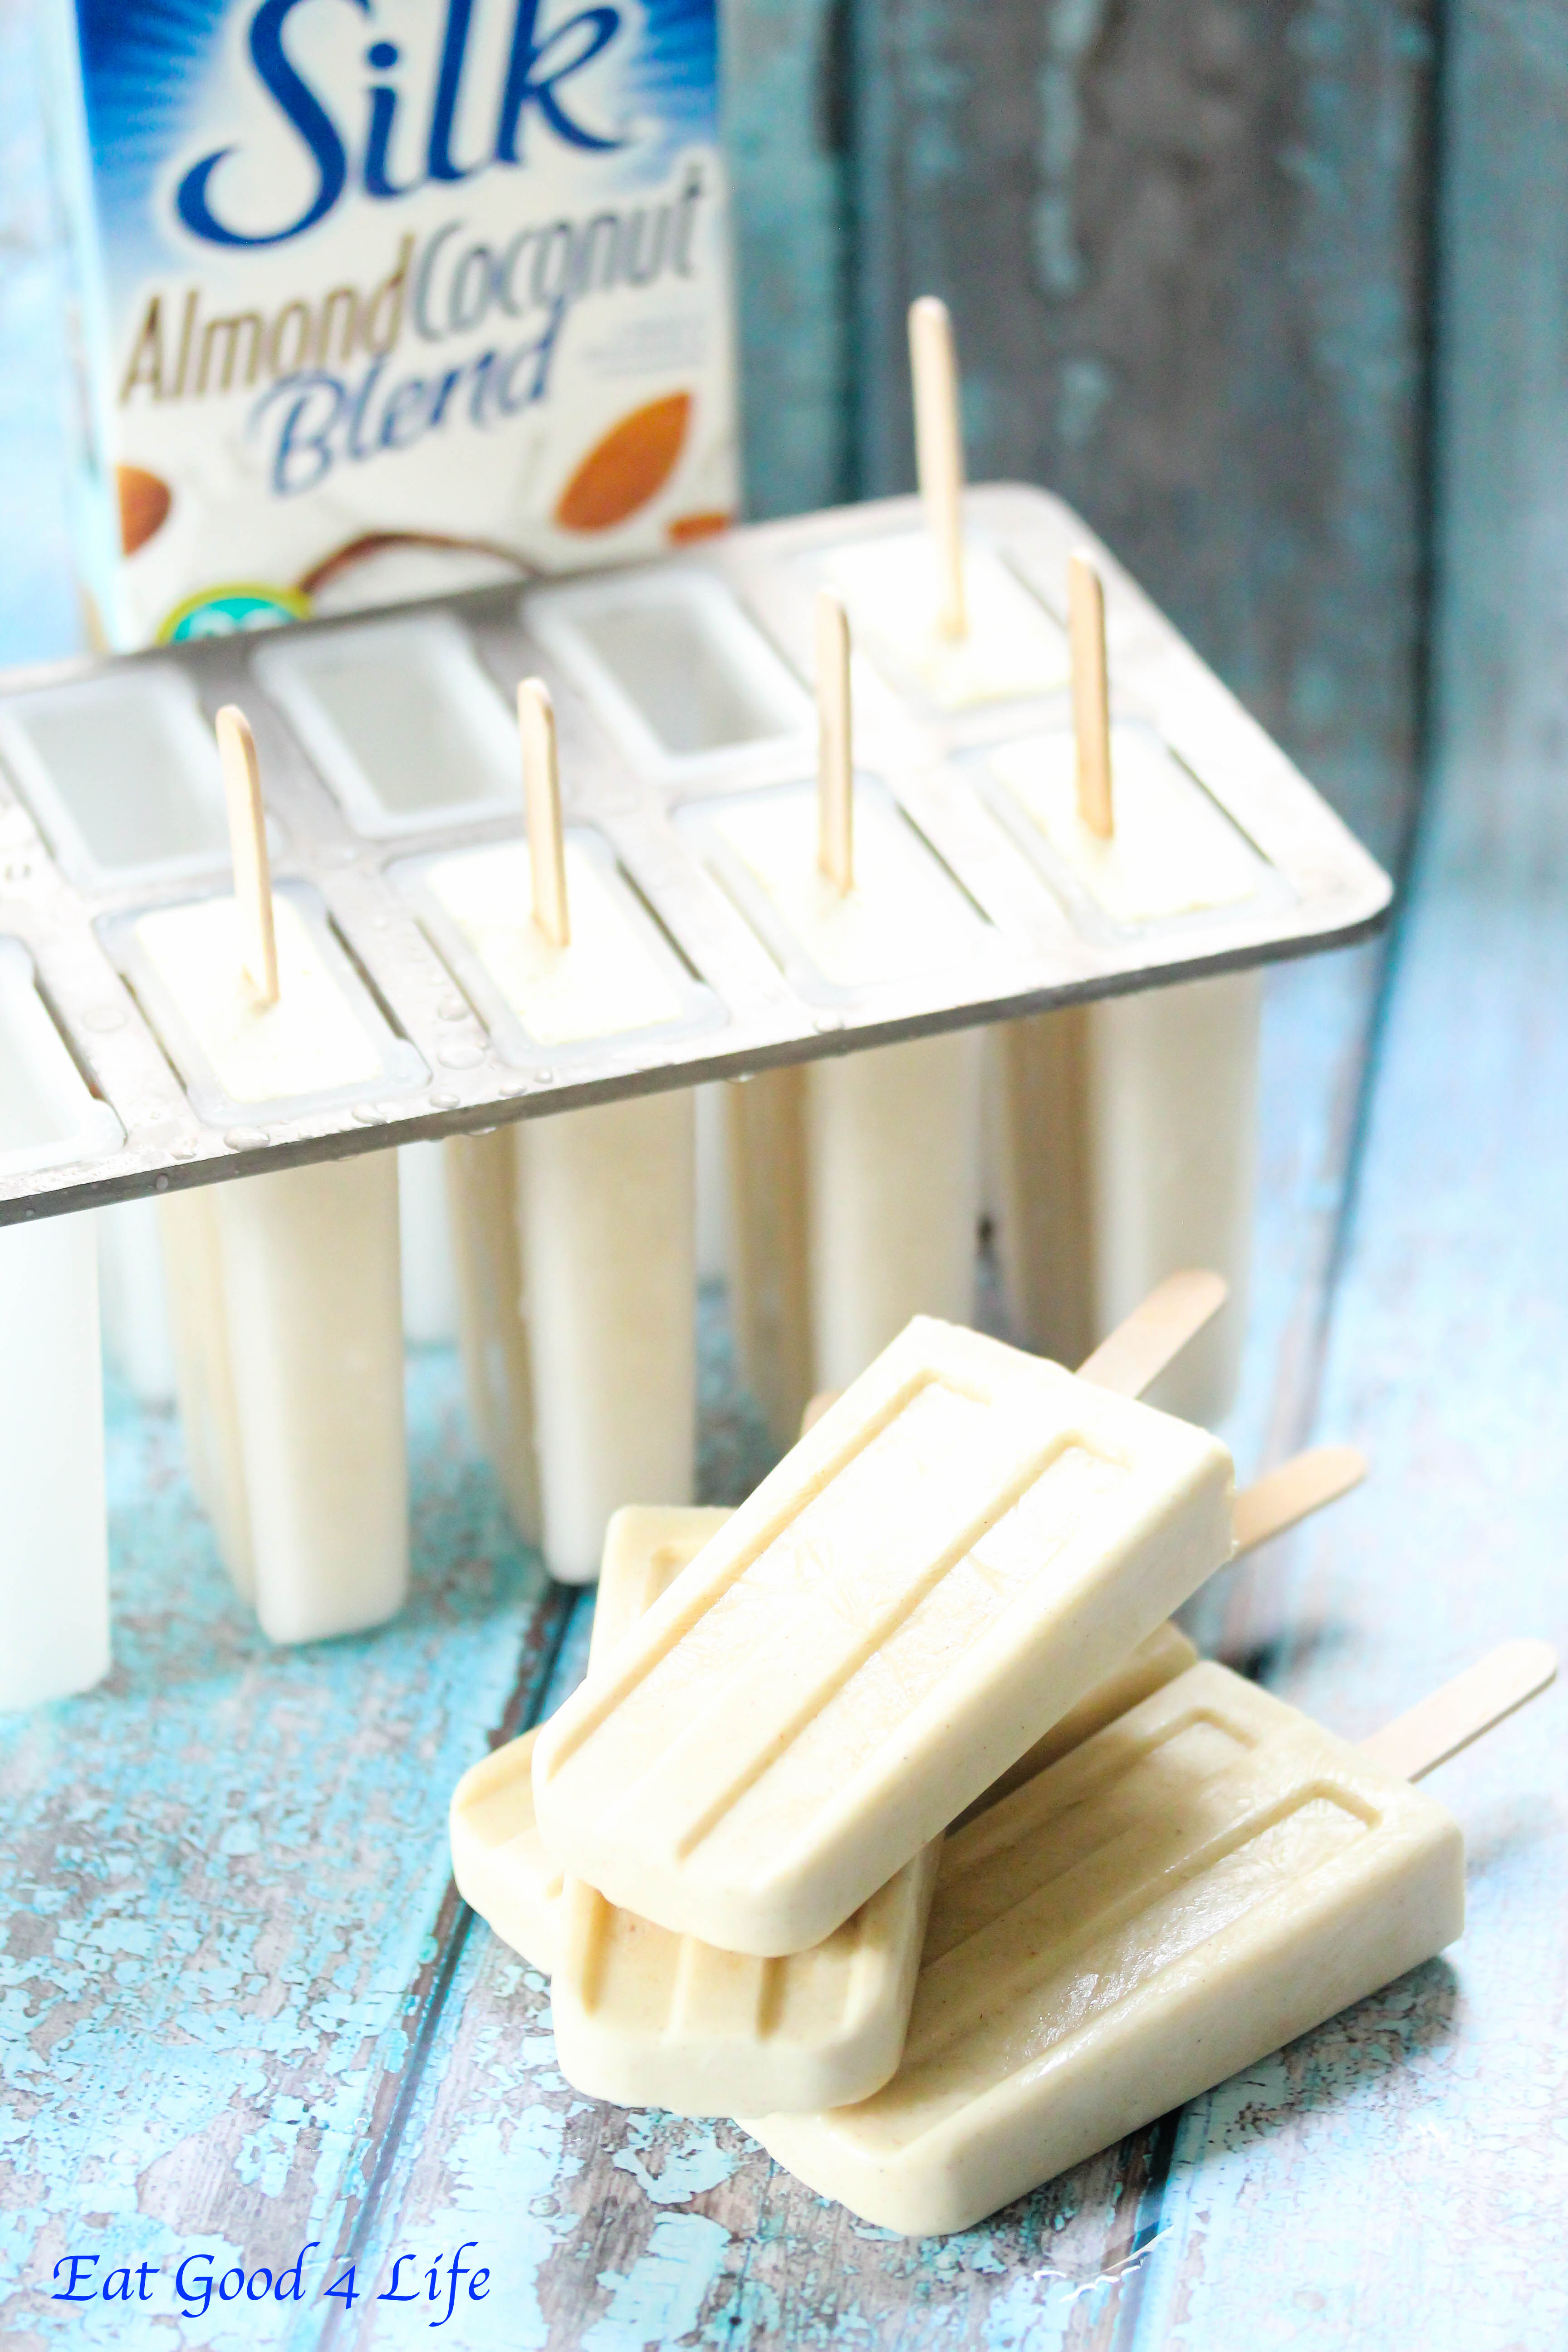 Licorice and coconut popsicles